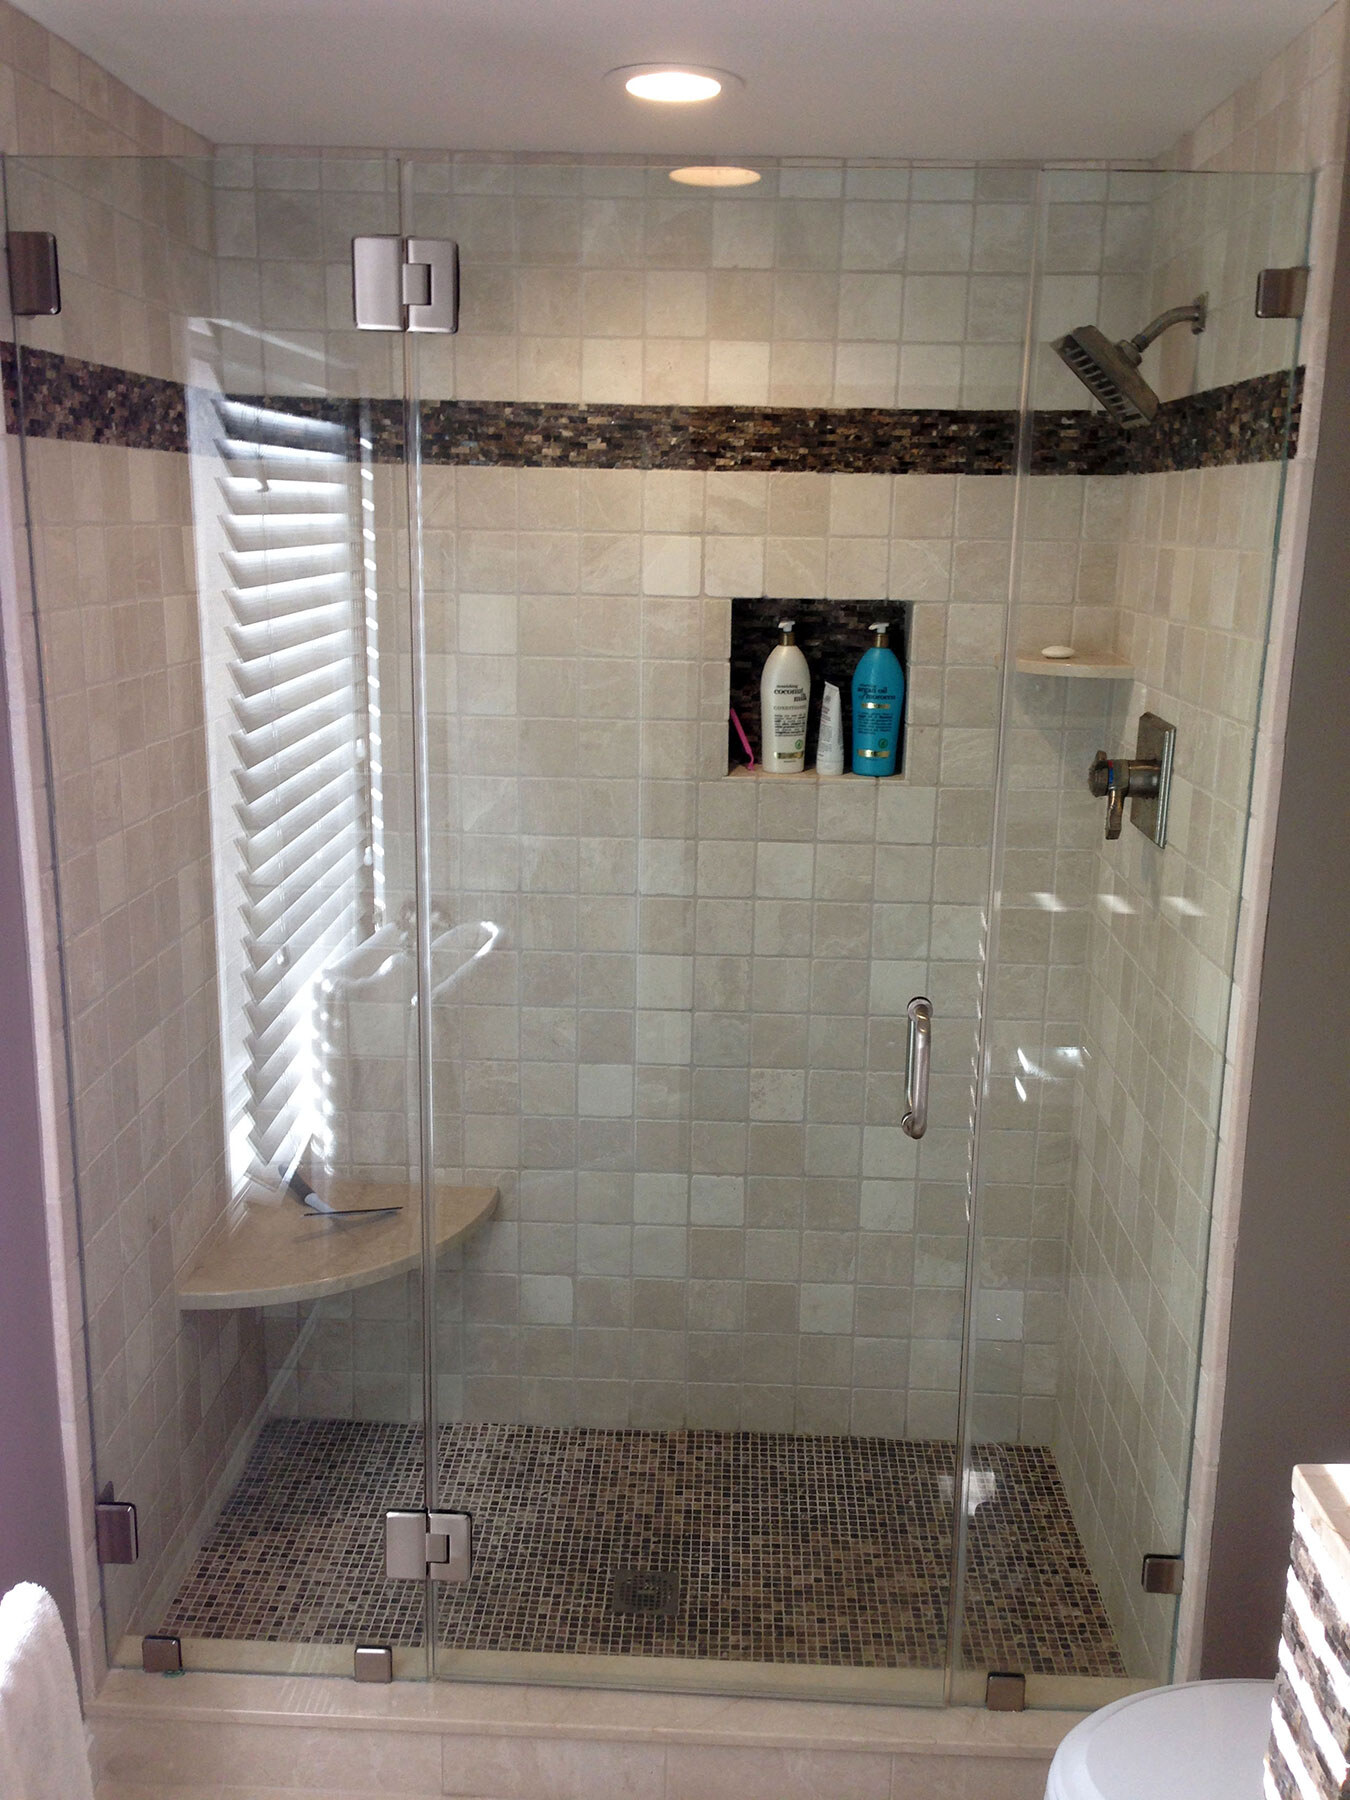 thumb subway large outlet galleries and enclosure bathroom tile pictures aqua glass shower surround x